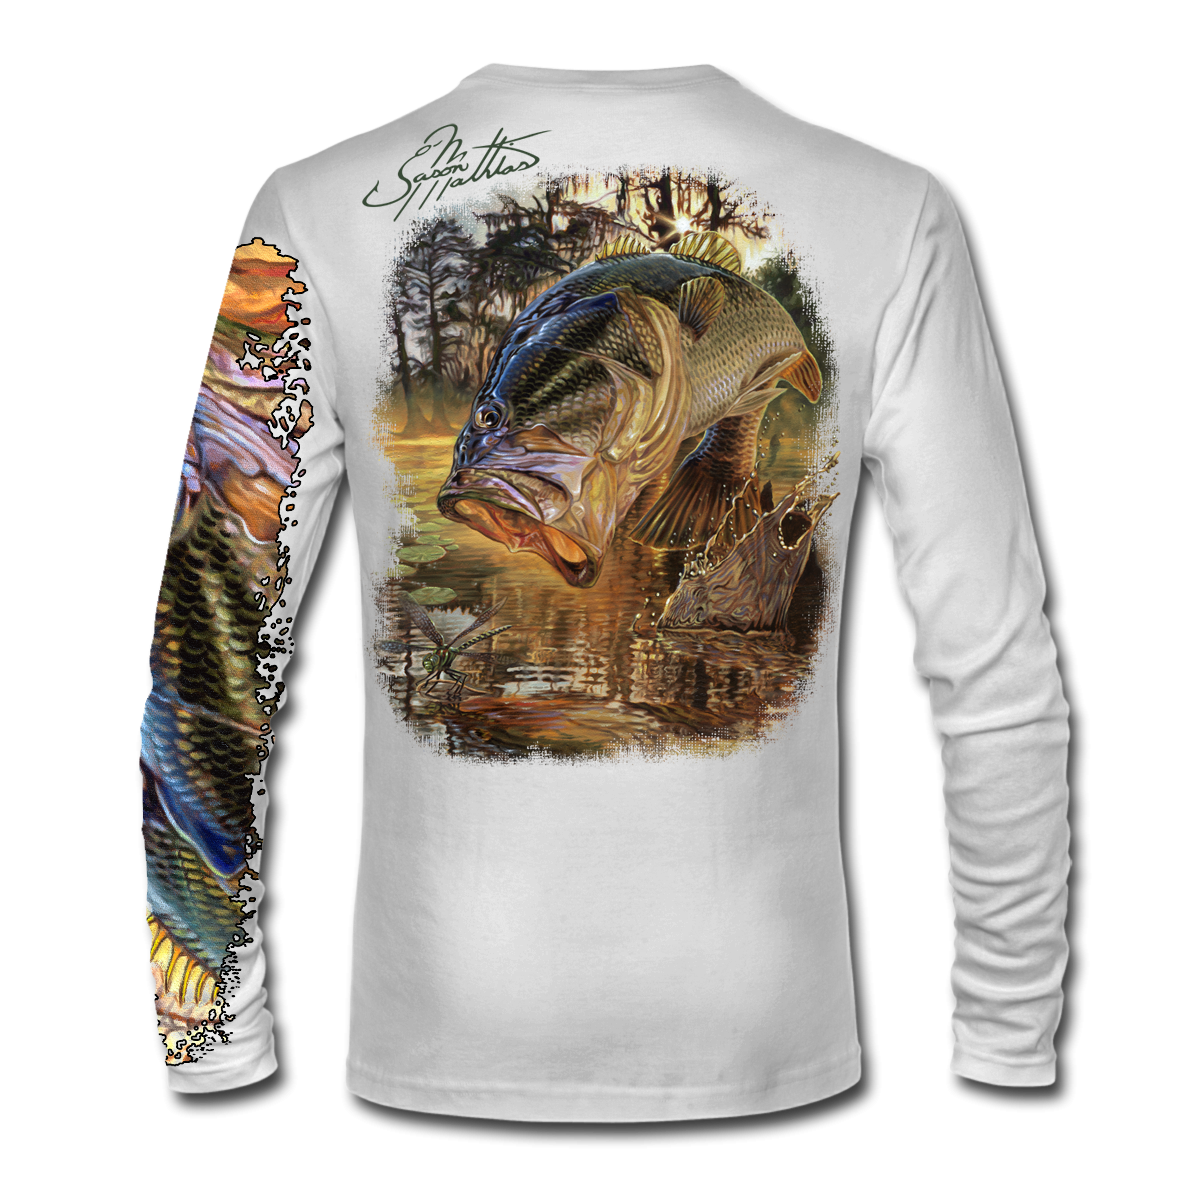 jason-mathias-large-mouth-bass-t-shirt-high-performance-gear-and-wear.png